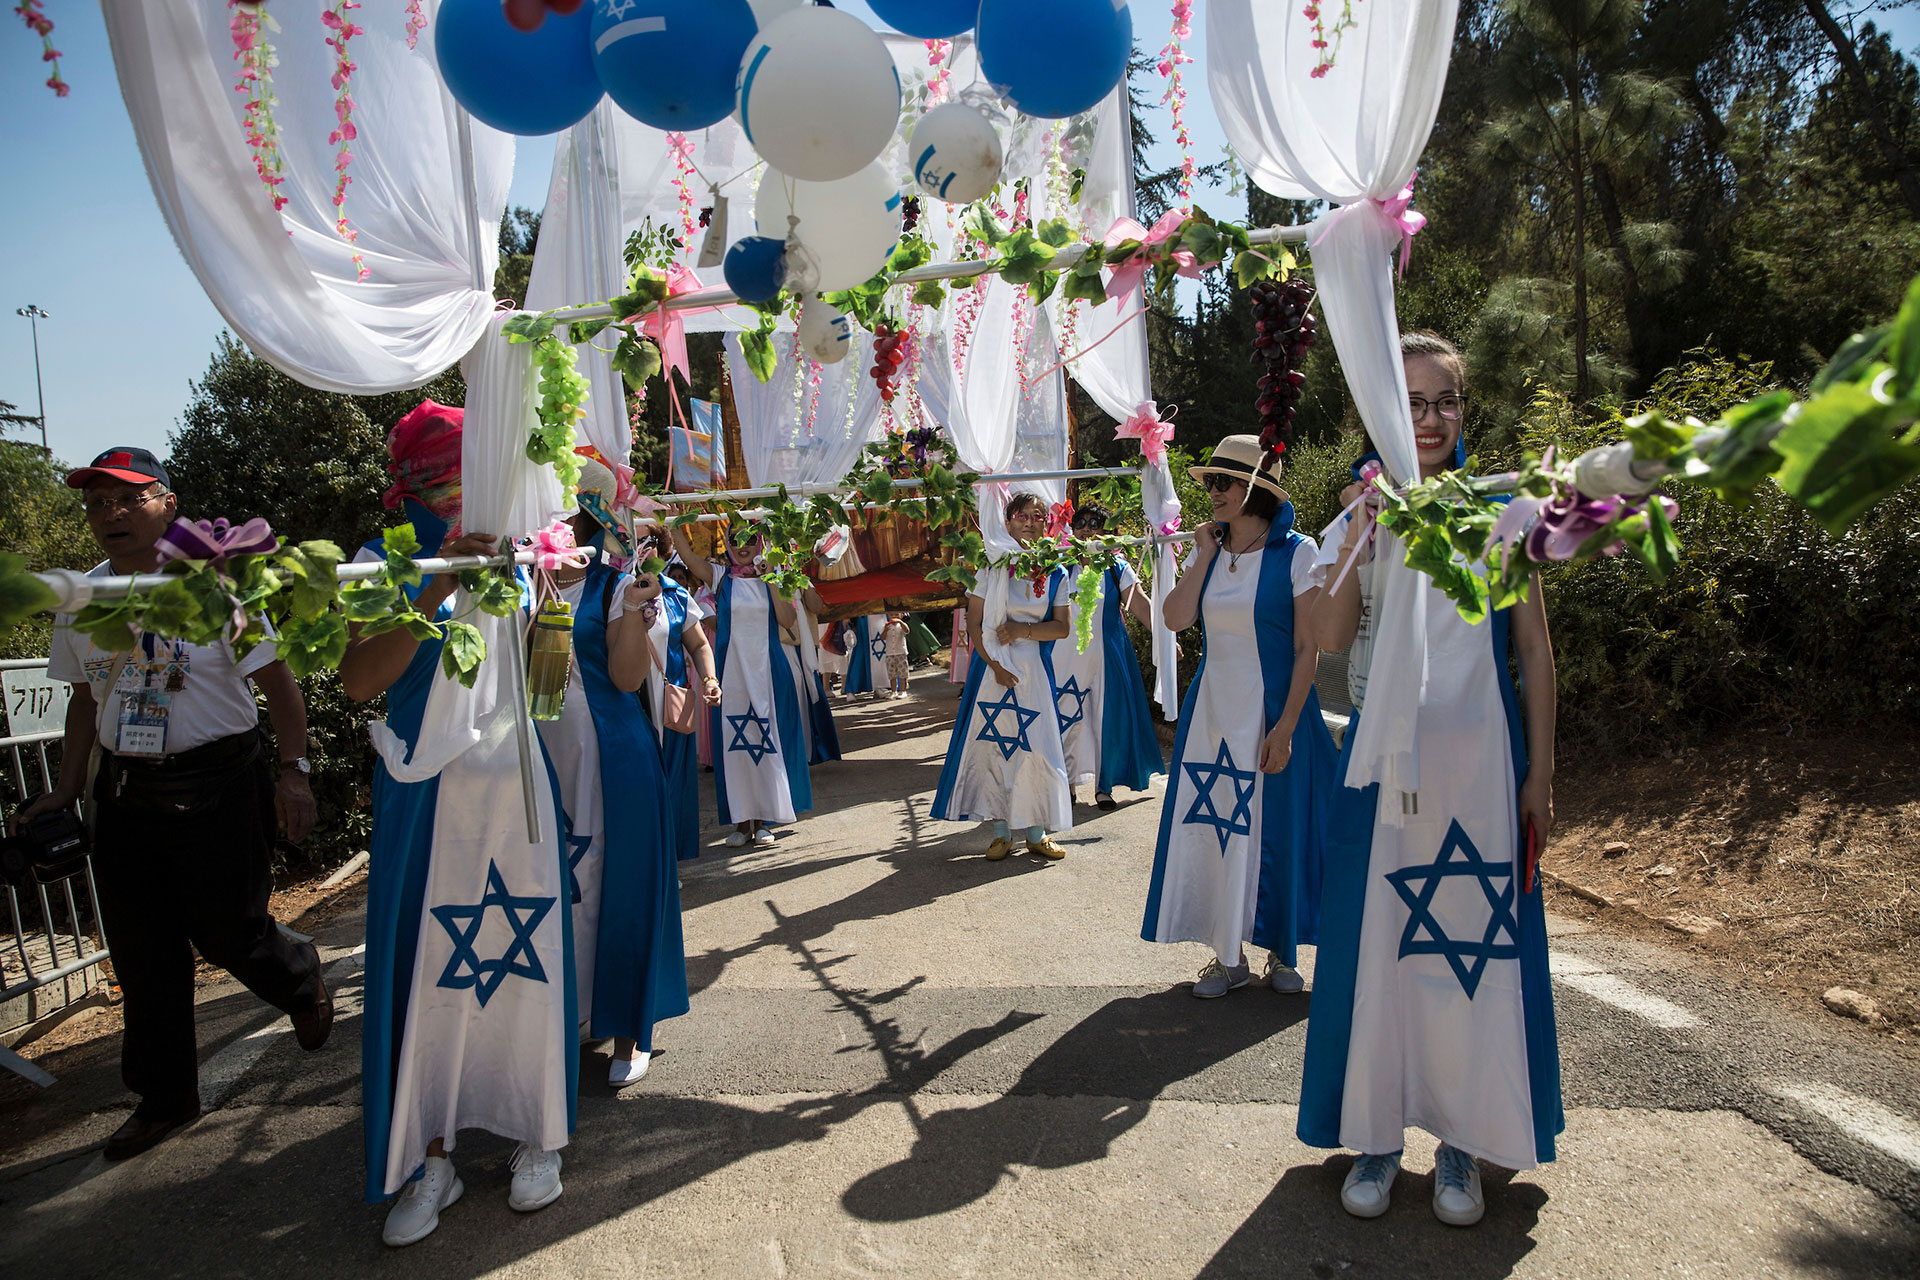 Christian pilgrims from China participate during a parade in Jerusalem on September 27,2018. Thousands of Christians from around the world came to Jerusalem for the week long Feast of Tabernacles, also known as Sukkot. (Photo by Heidi Levine for The GroundTruth Project).